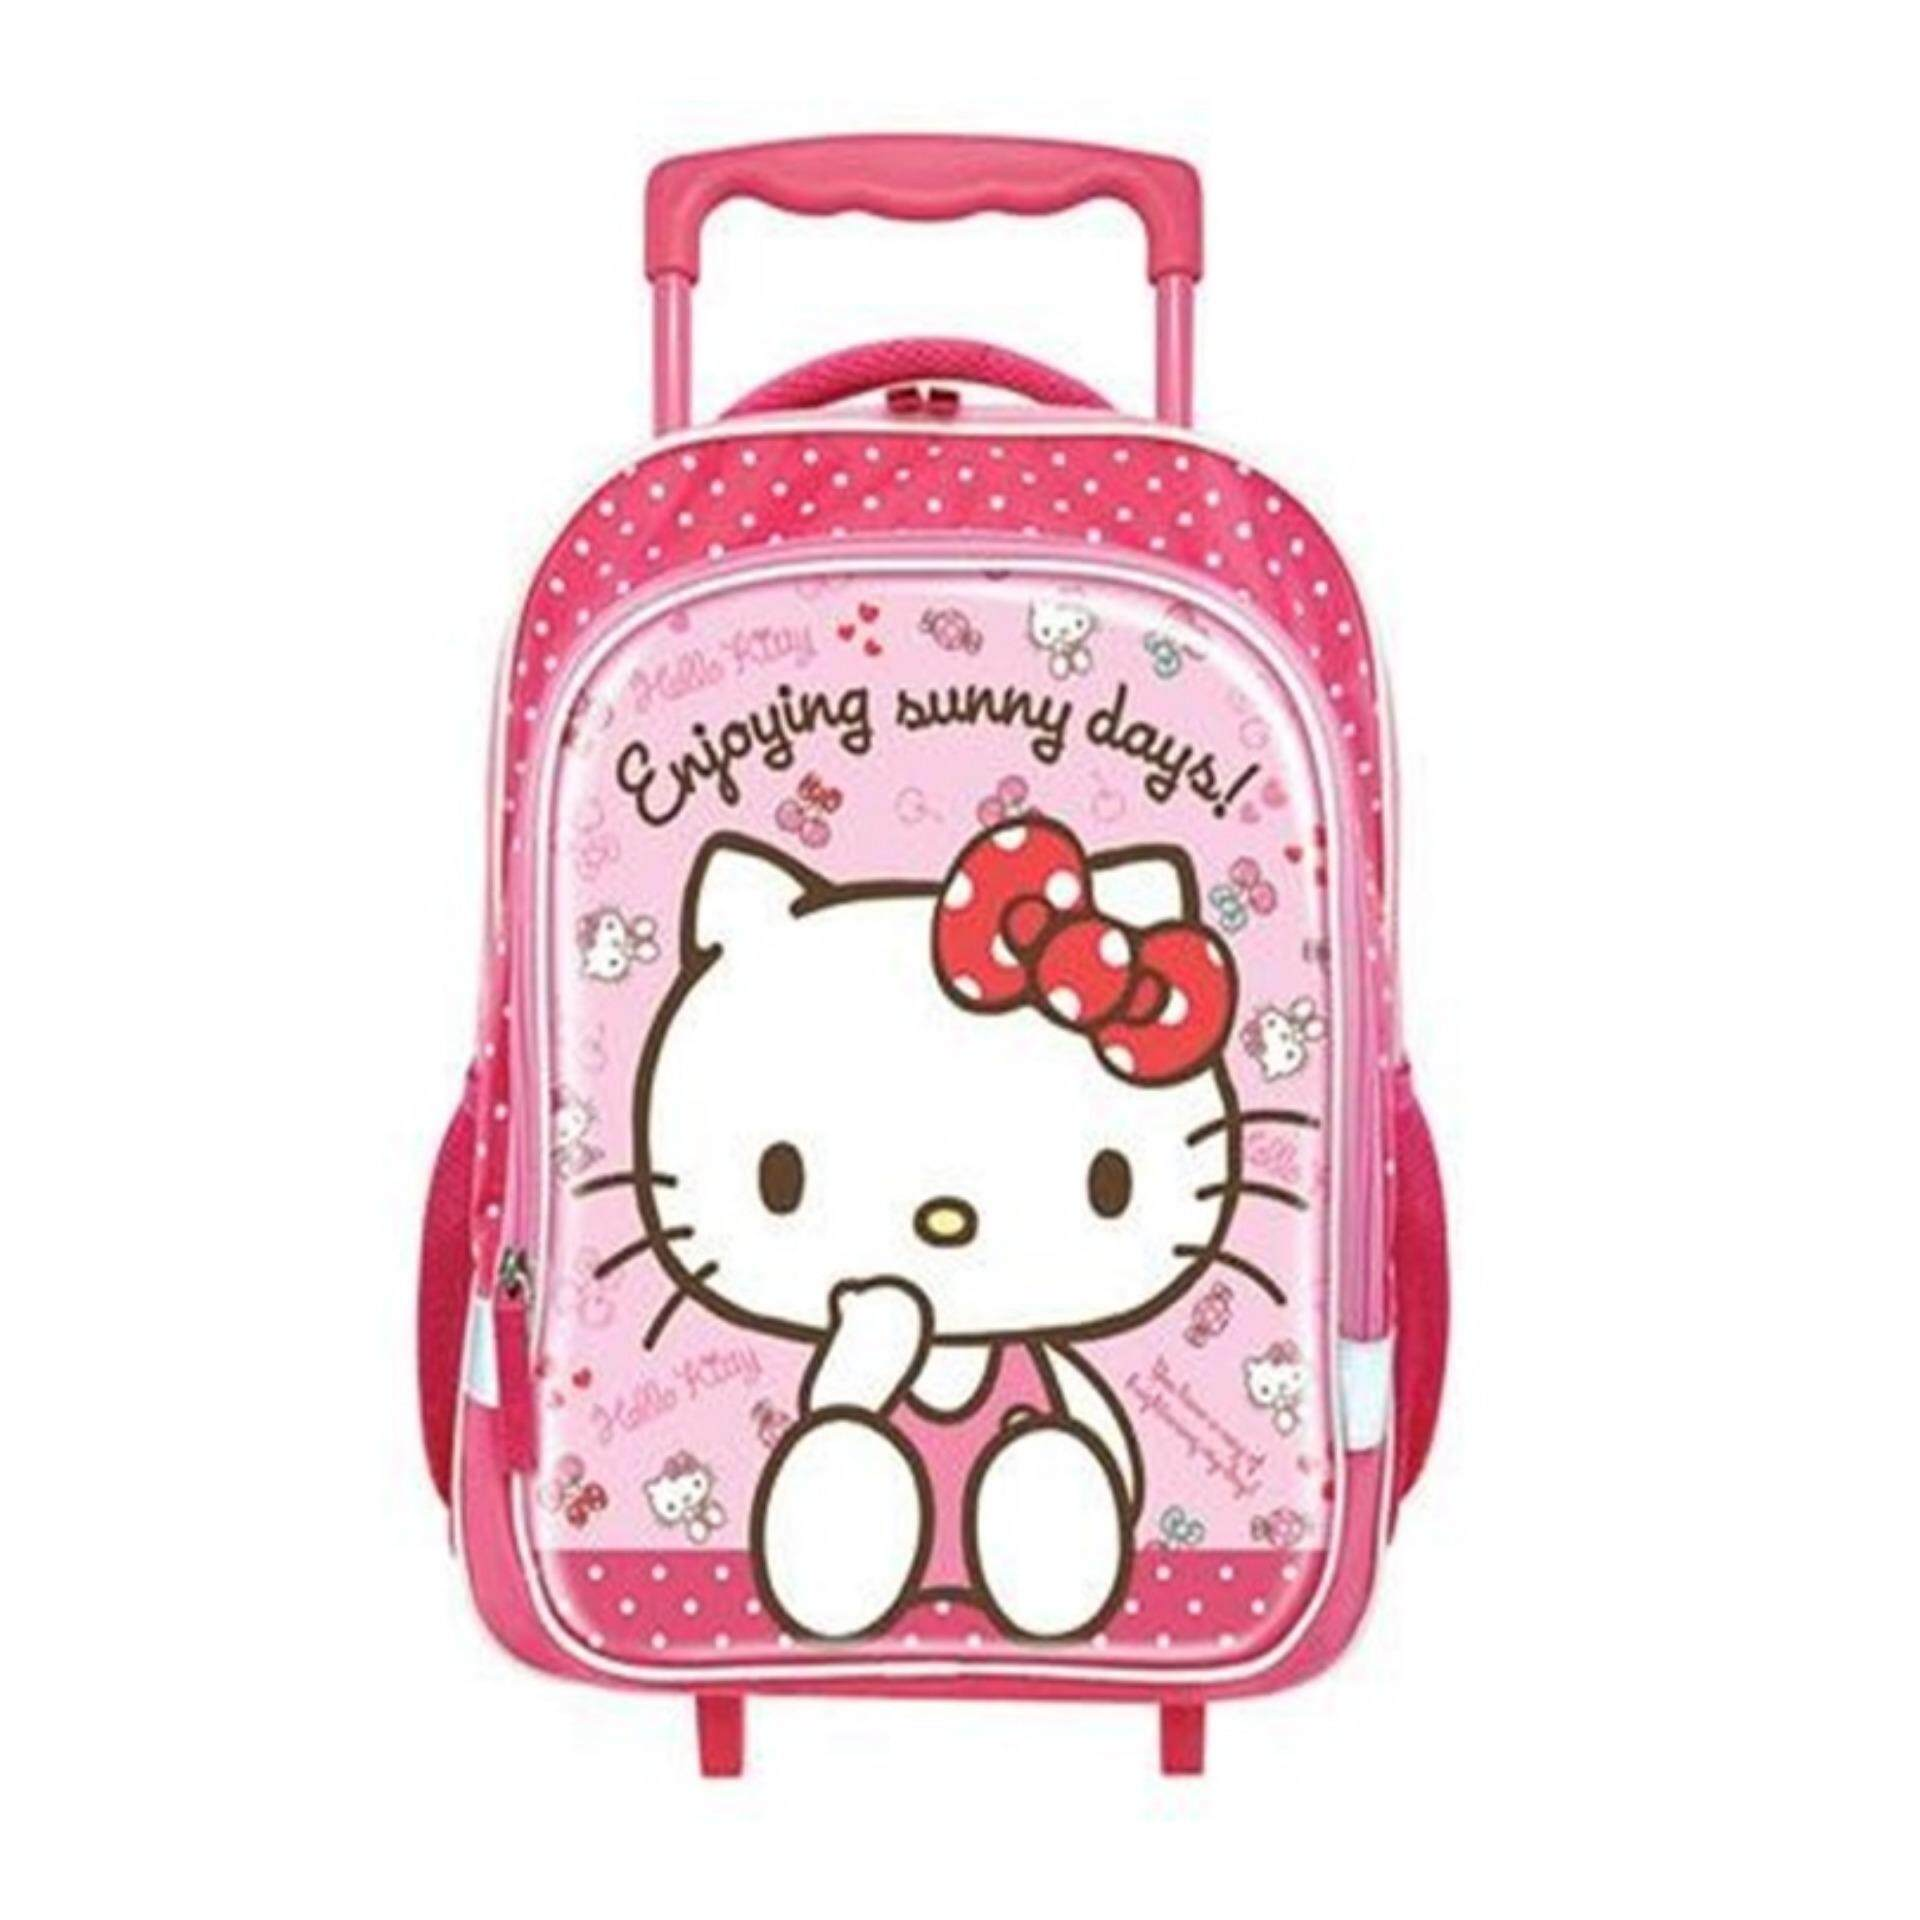 1f99684ddb Hello Kitty Bags and Travel price in Malaysia - Best Hello Kitty ...